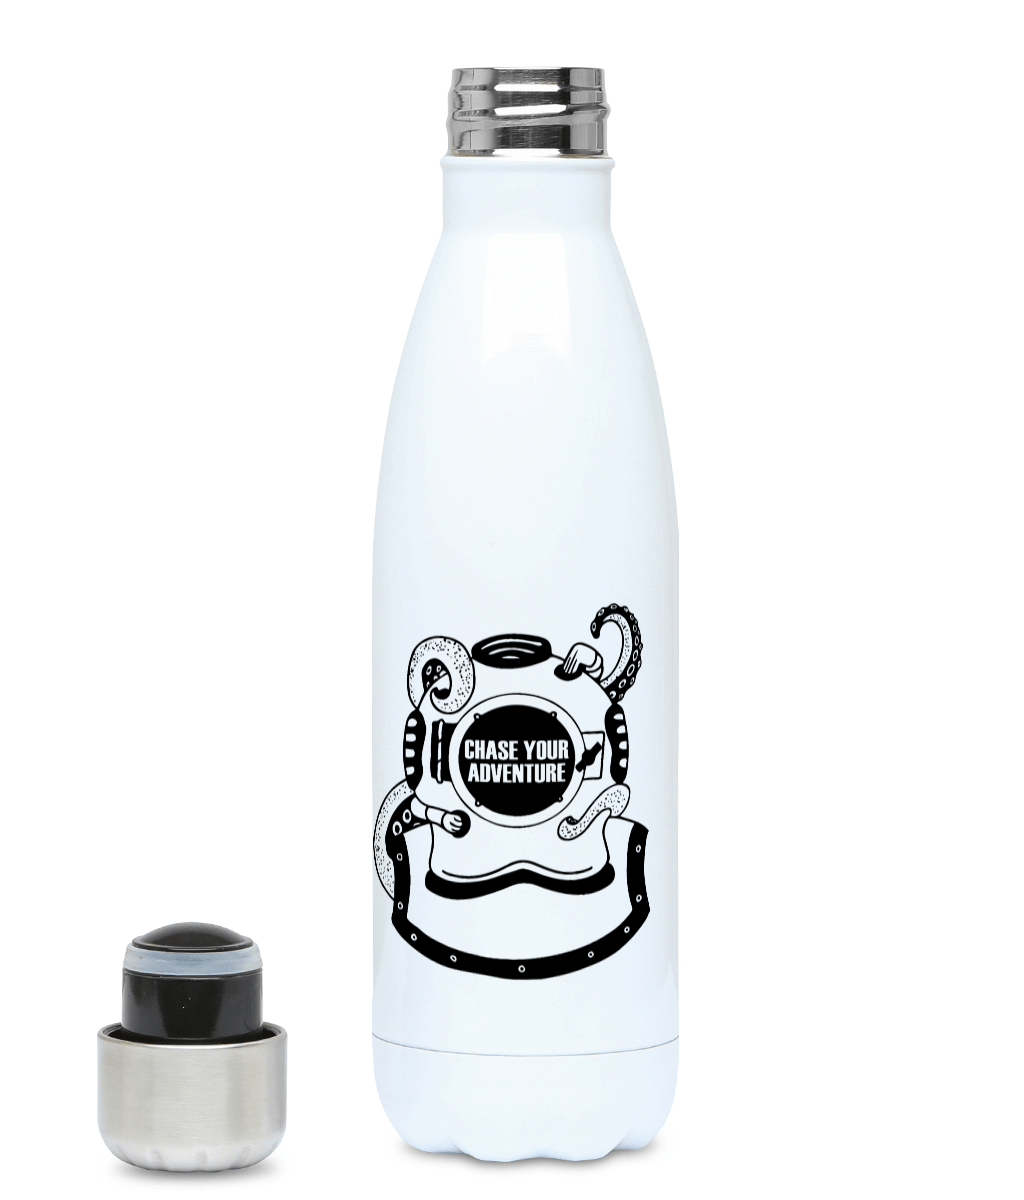 Chase Your Adventure - Diver - Plastic Free 500ml Water Bottle, Suggested Products, Pen and Ink Studios Adventure Clothing